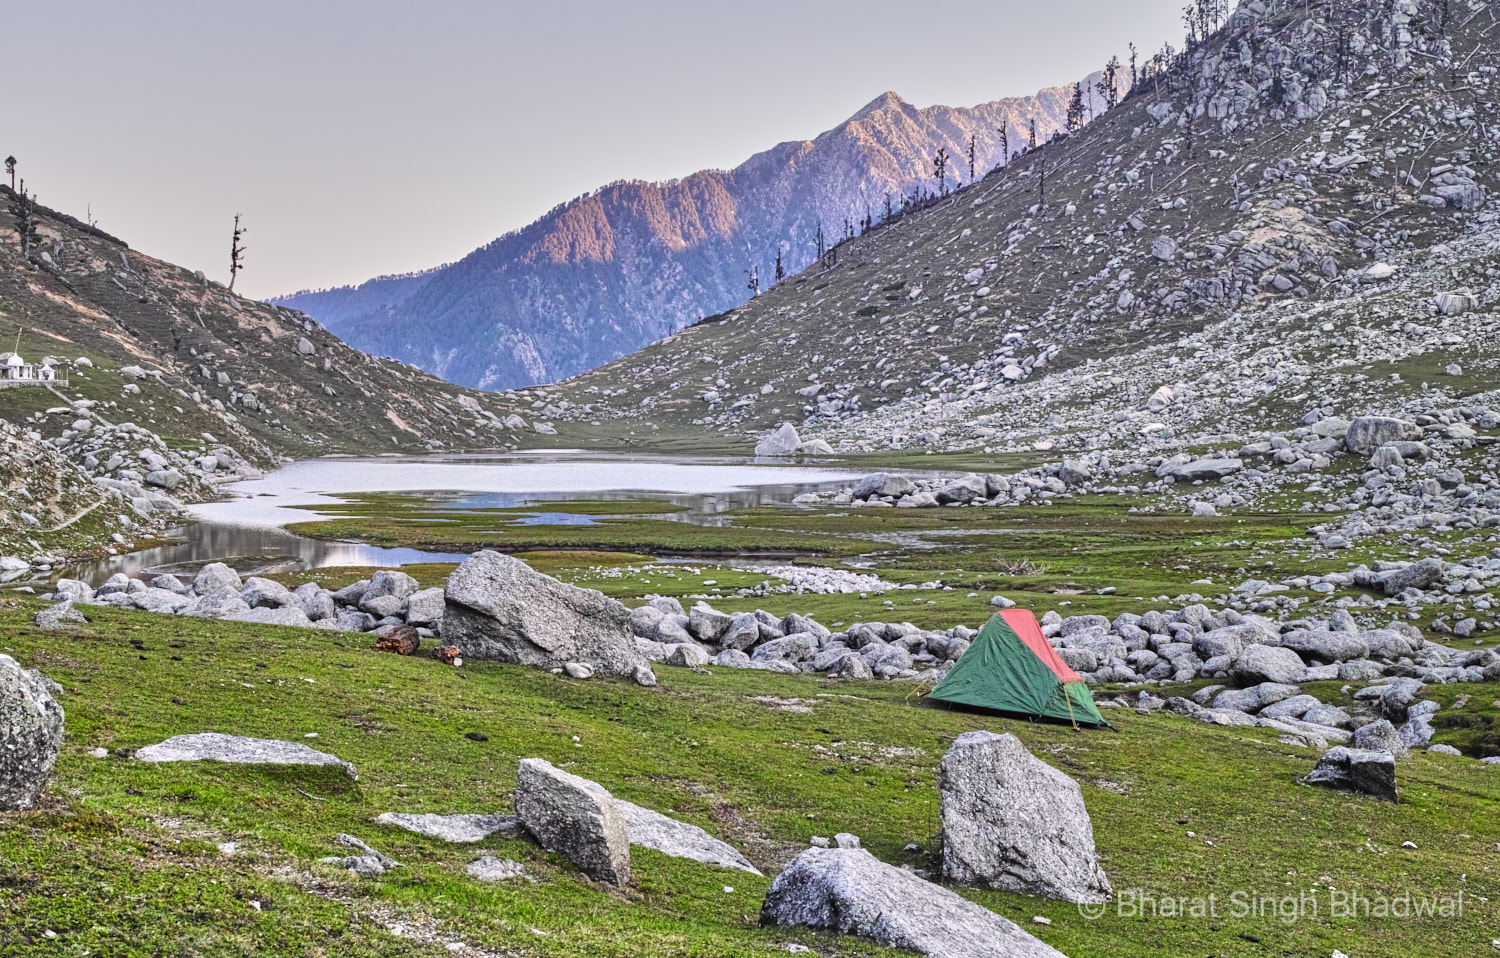 Sunrise at Kareri lake. Our camp in the foreground on the East end of the lake. Shiv-Shakti temple on the left with Baleni pass lit in the background.